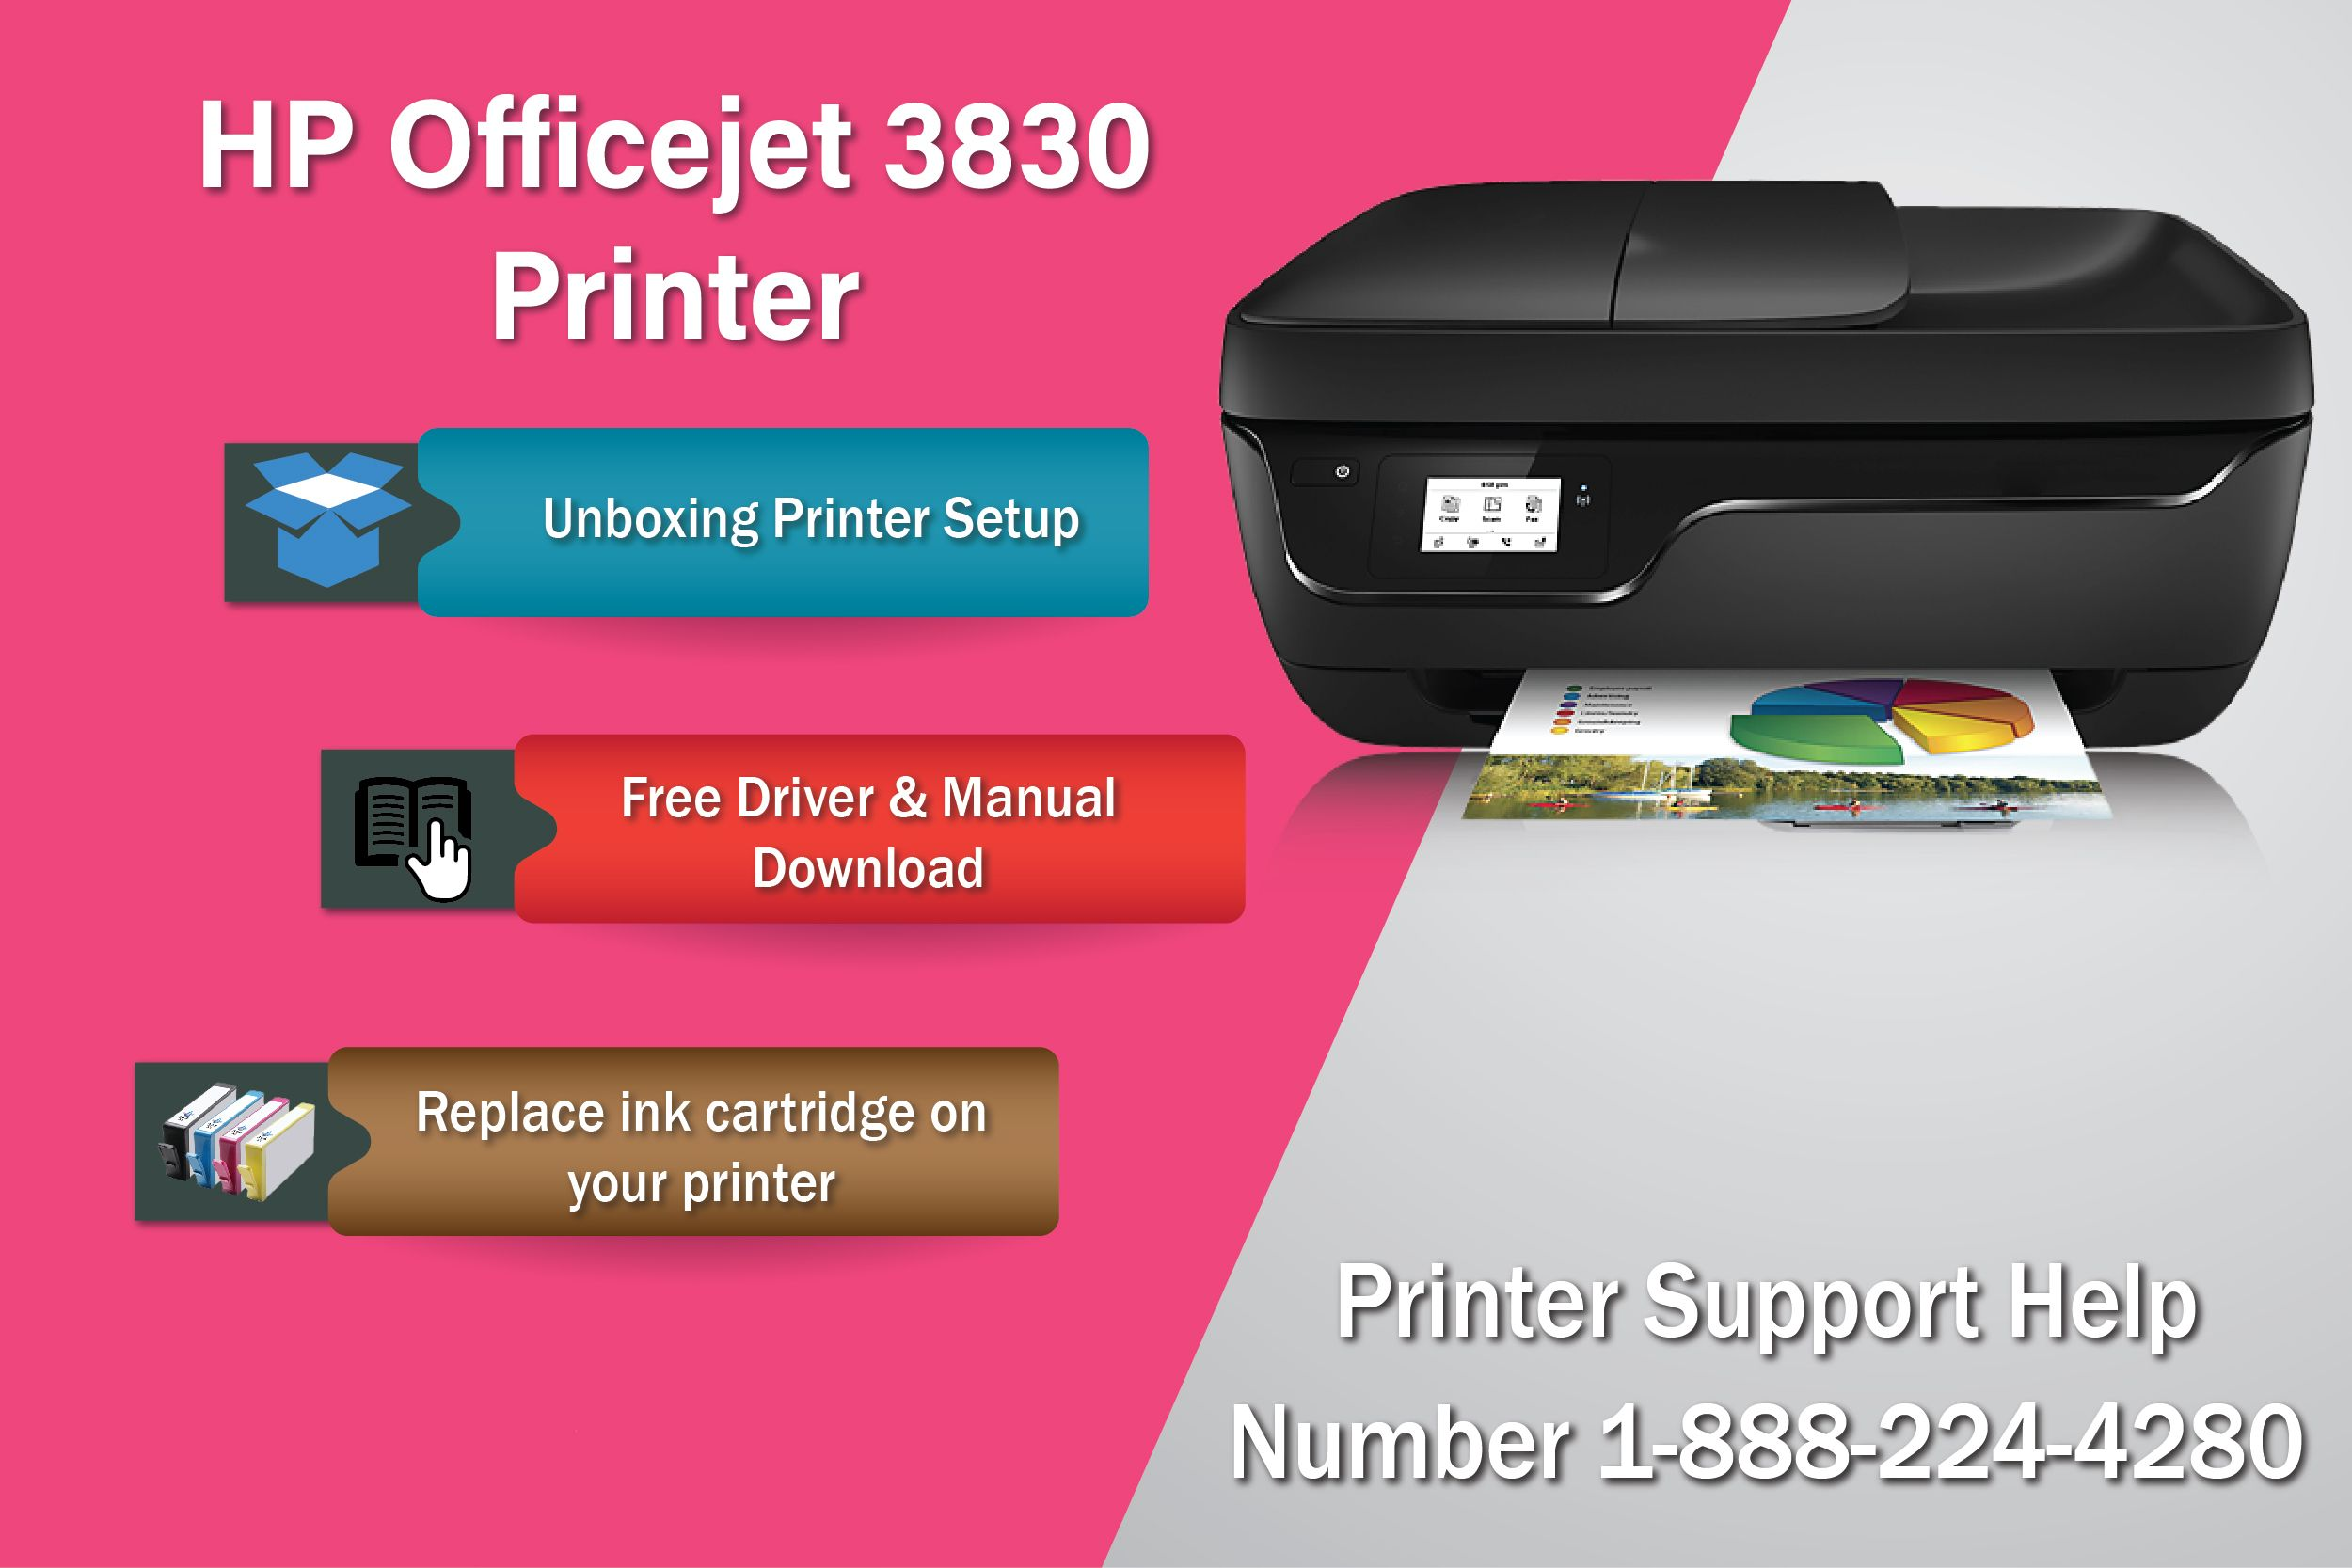 123.hp.com/setup 3830 - get instruction manual to setup your HP 3830  officejet printer, Free driver and download and Replace the ink cartridge  Call Our Toll ...